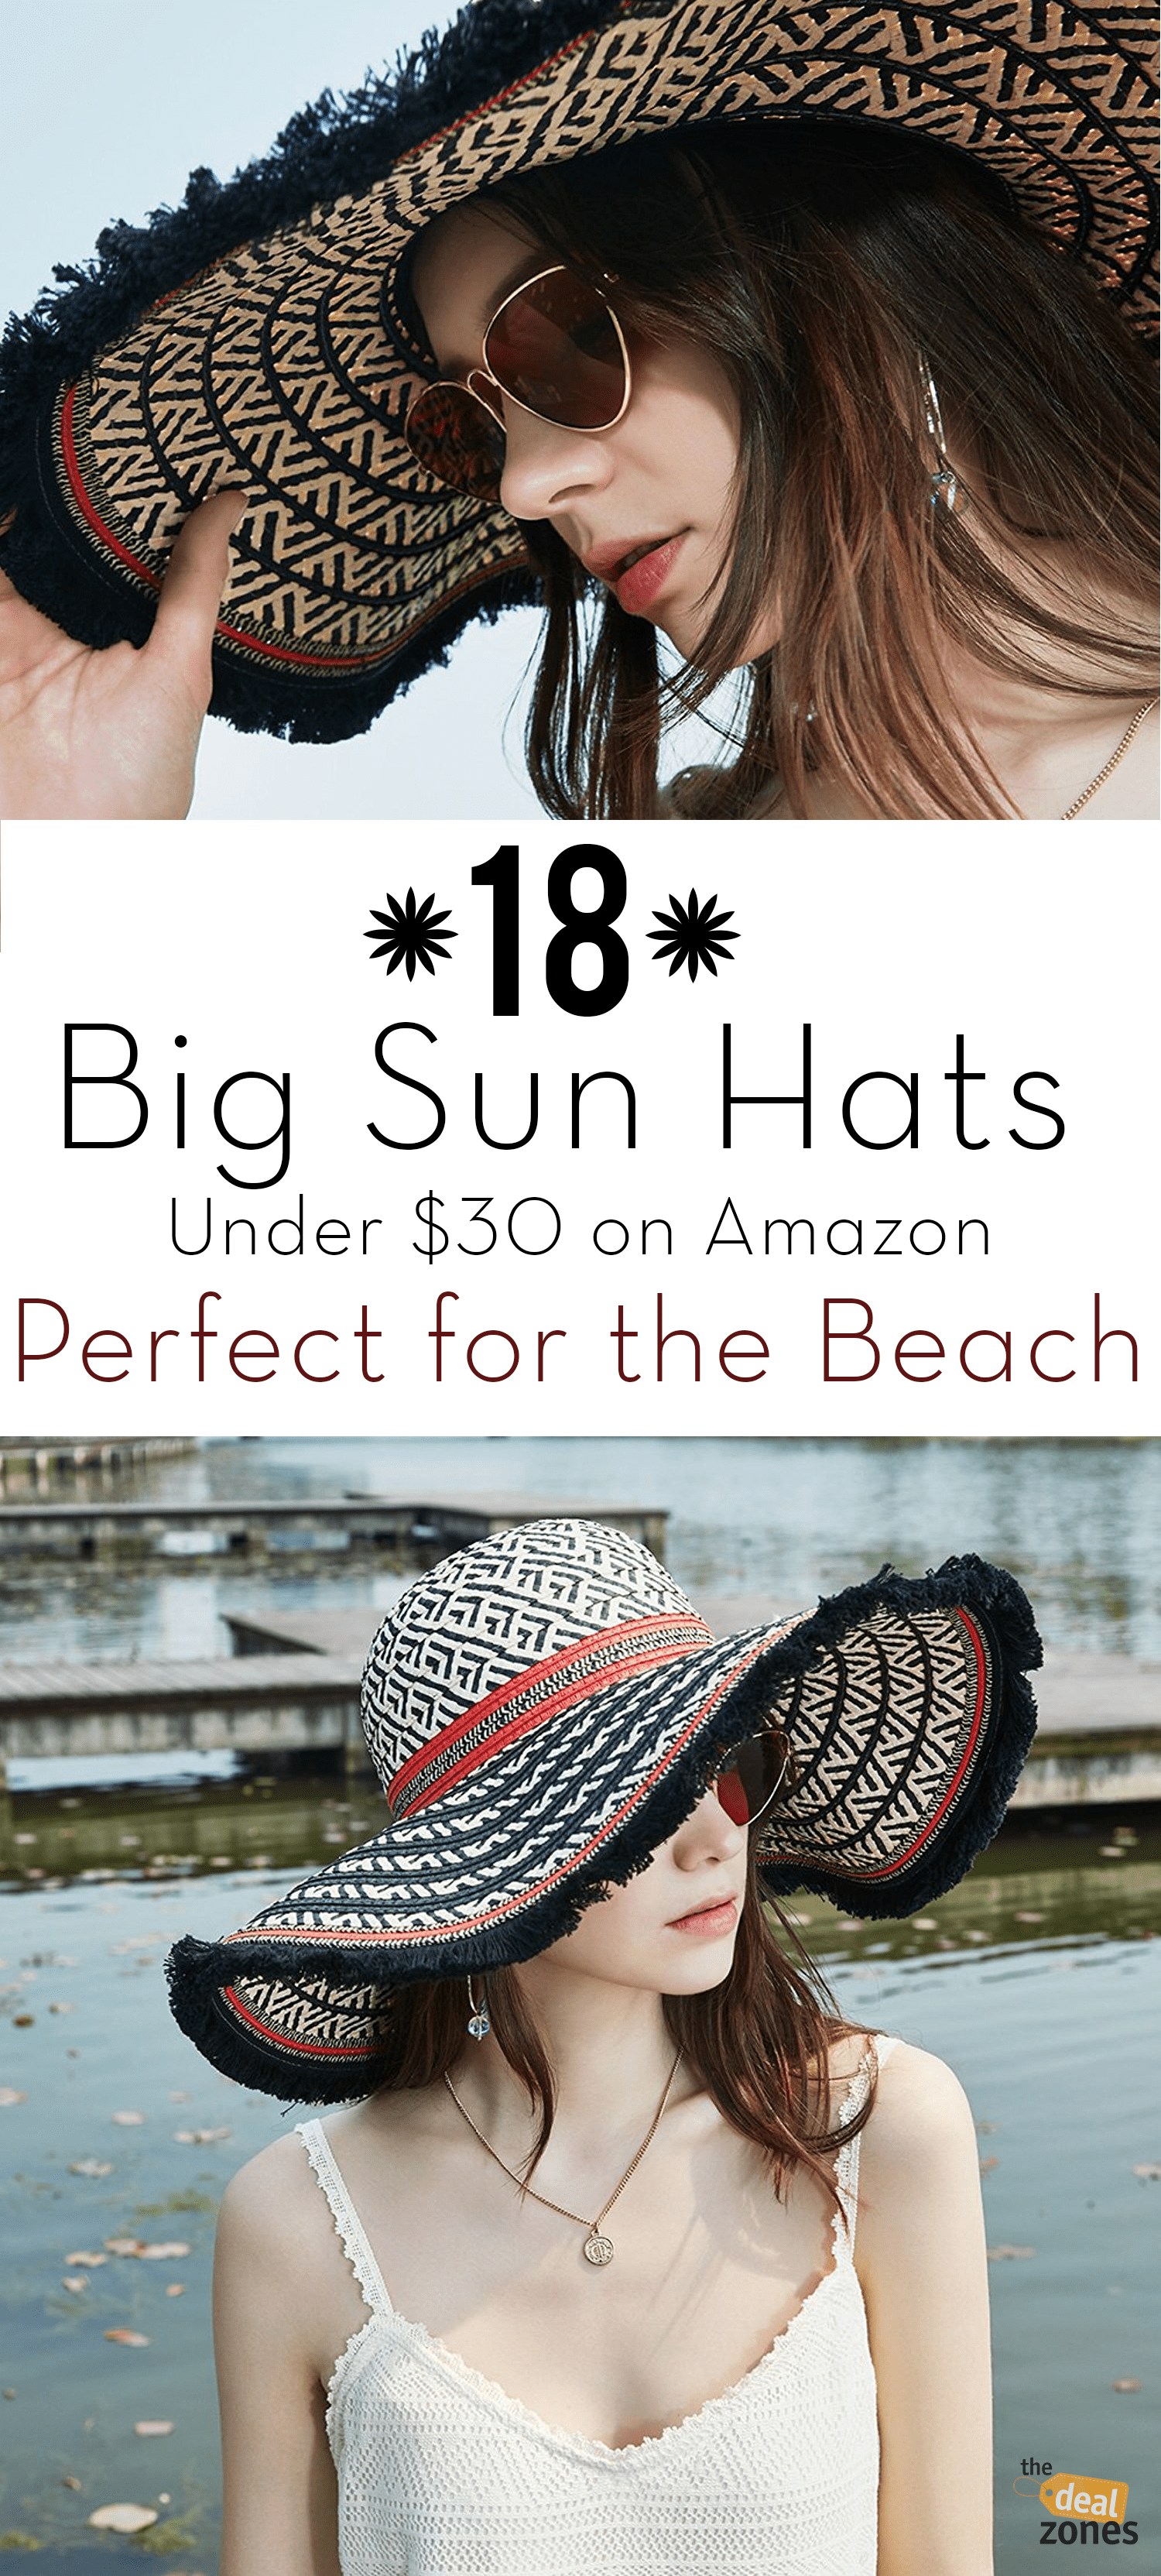 18 Big Sun Hats Under  30 on Amazon Perfect for the Beach  bigsunhats   stylishsunhats 1a19cc5b4d4